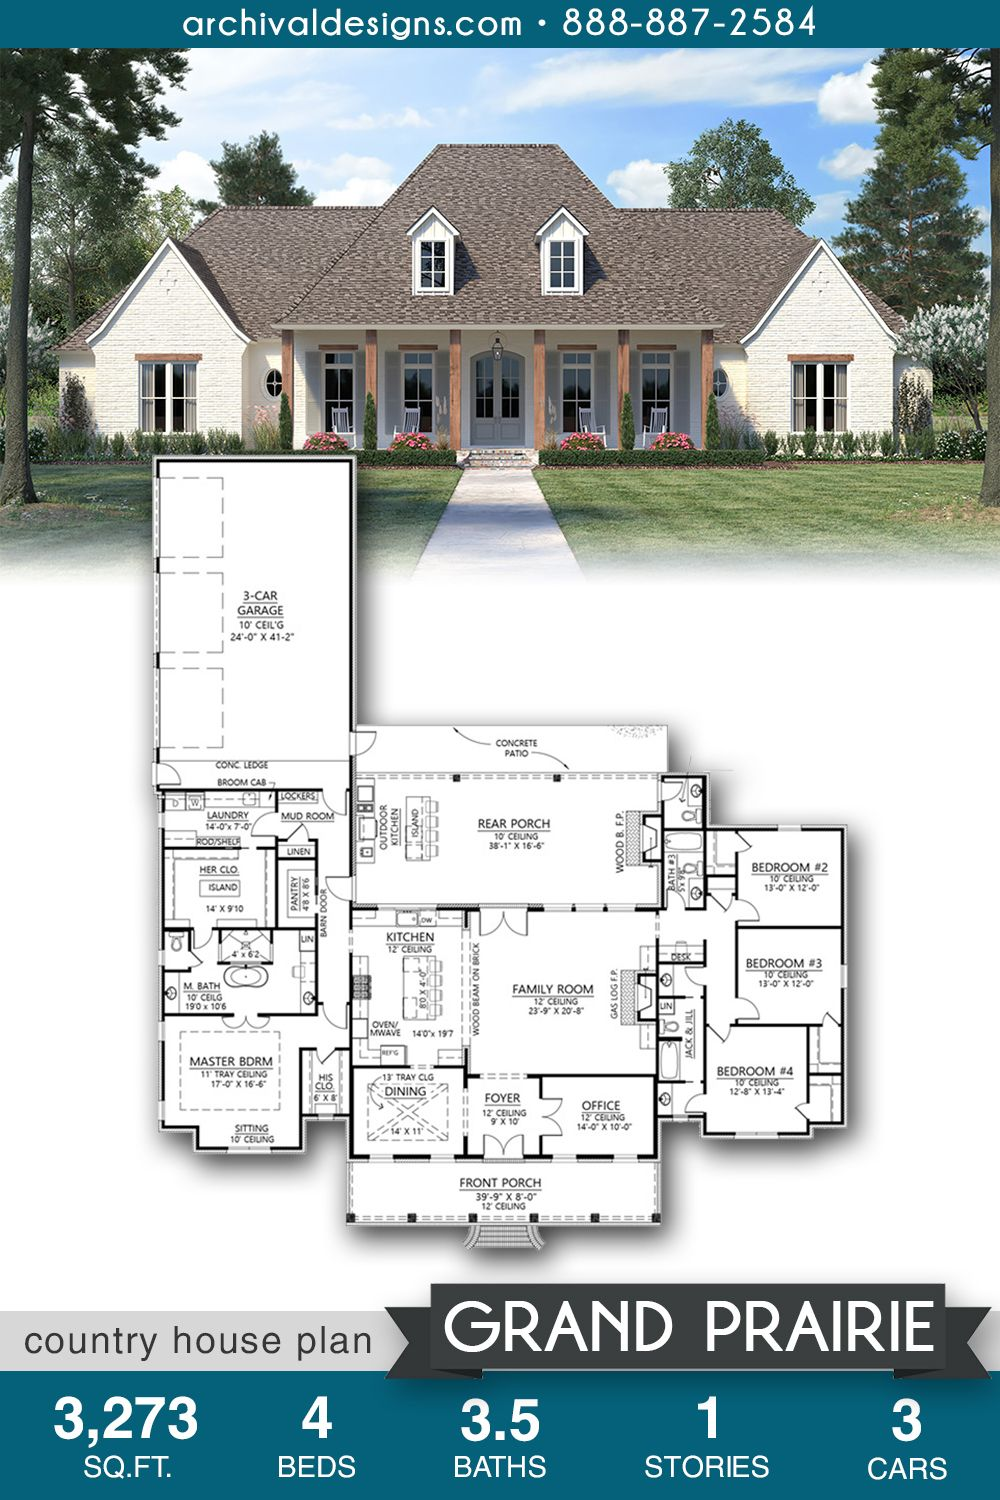 Grand Prairie House Plan House Plans Country House Plan Prairie House